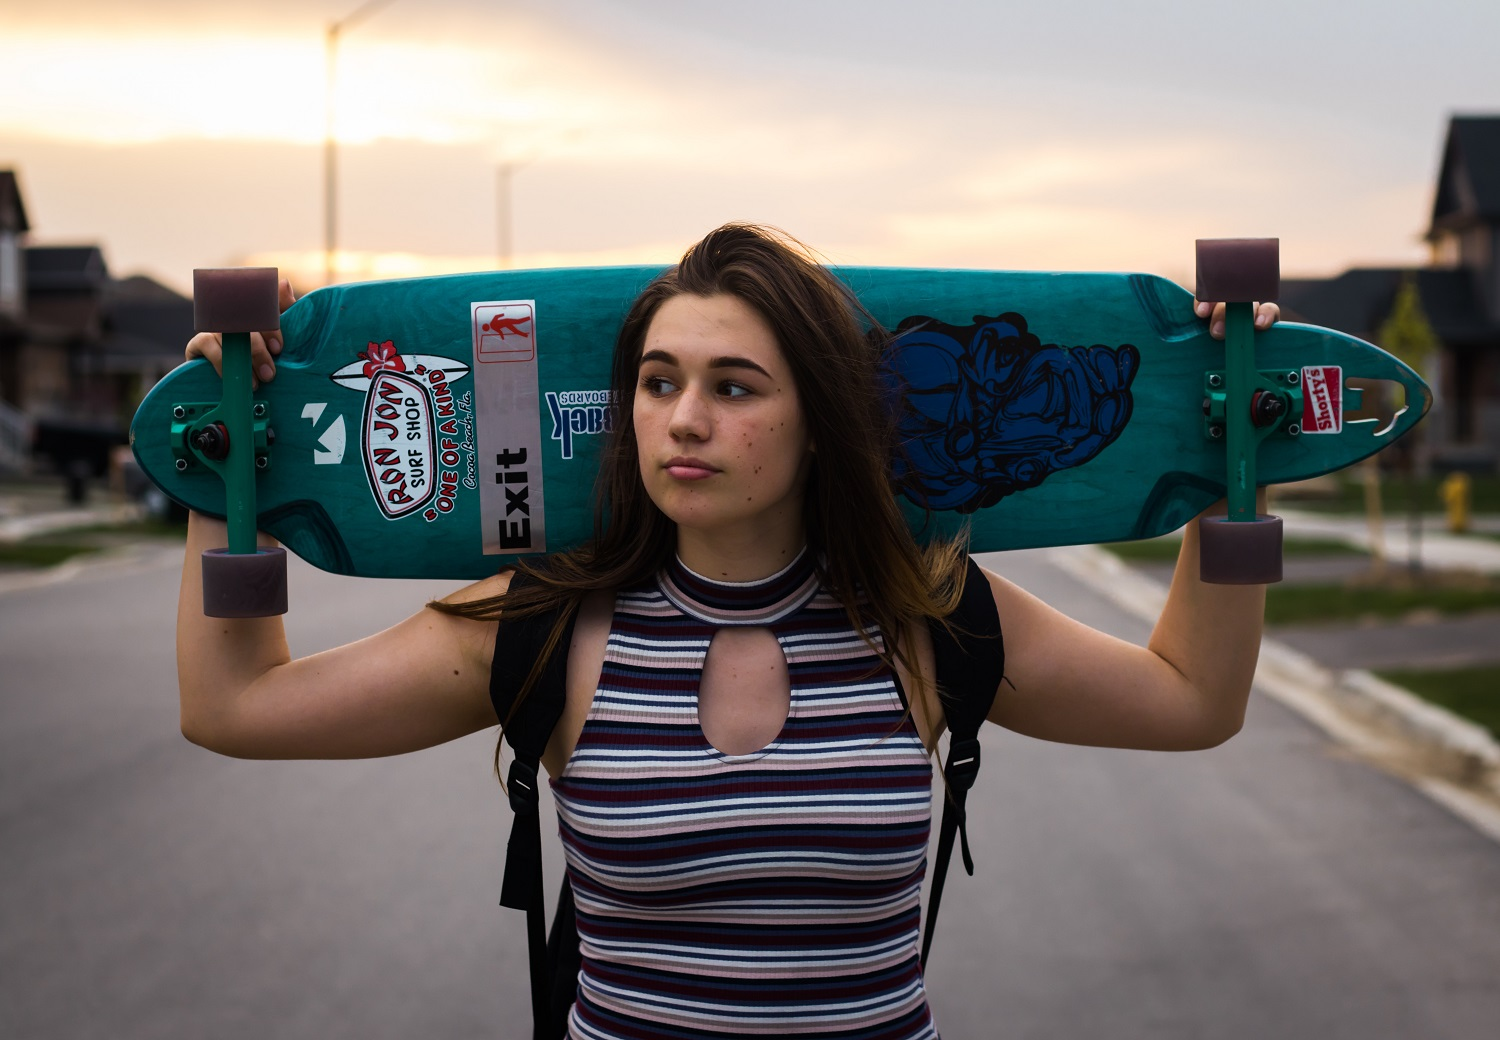 Woman with a skateboard - Outdoor product photography